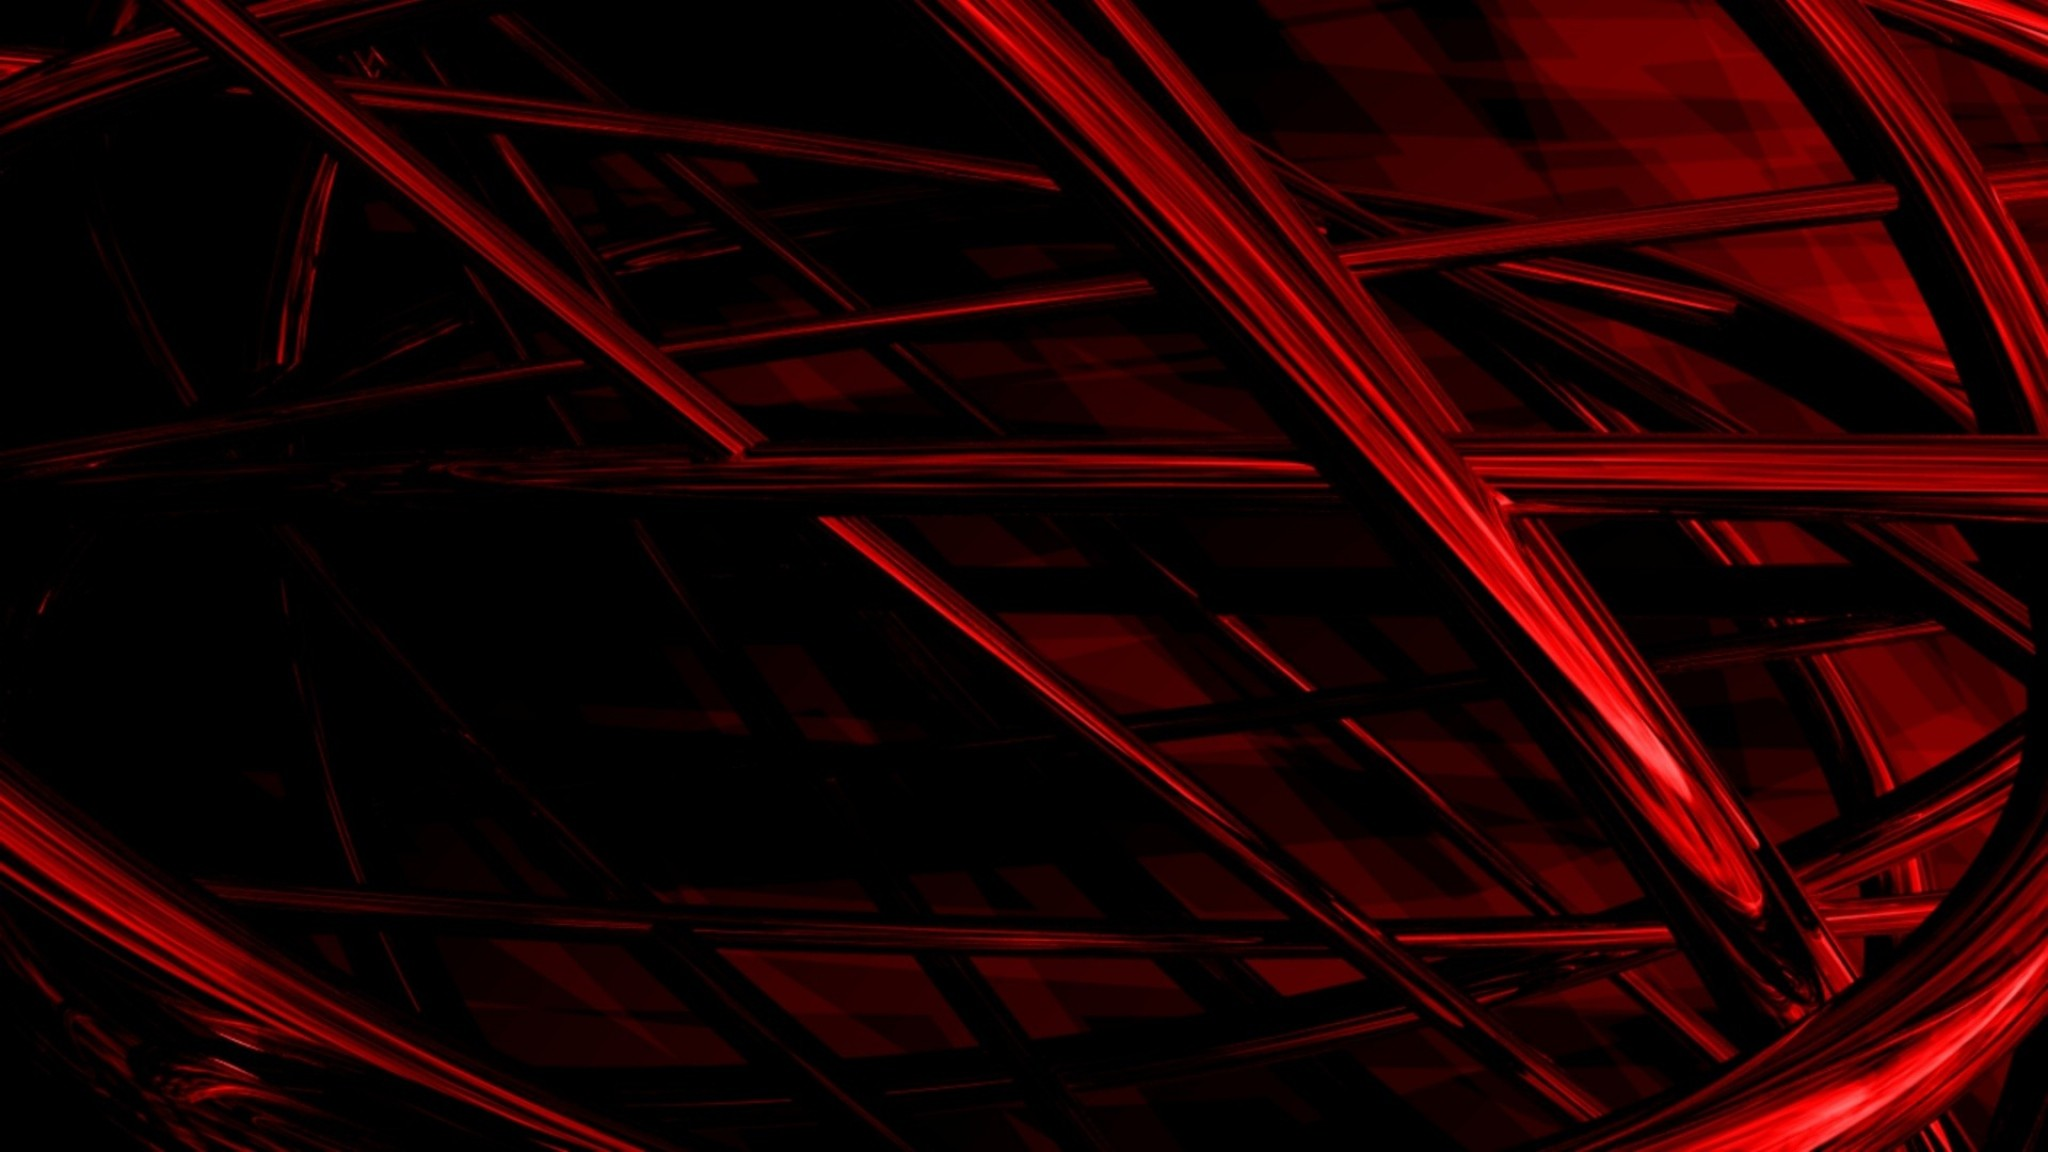 Black And Red Background Hd 1920x1080 Download Hd Wallpaper Wallpapertip